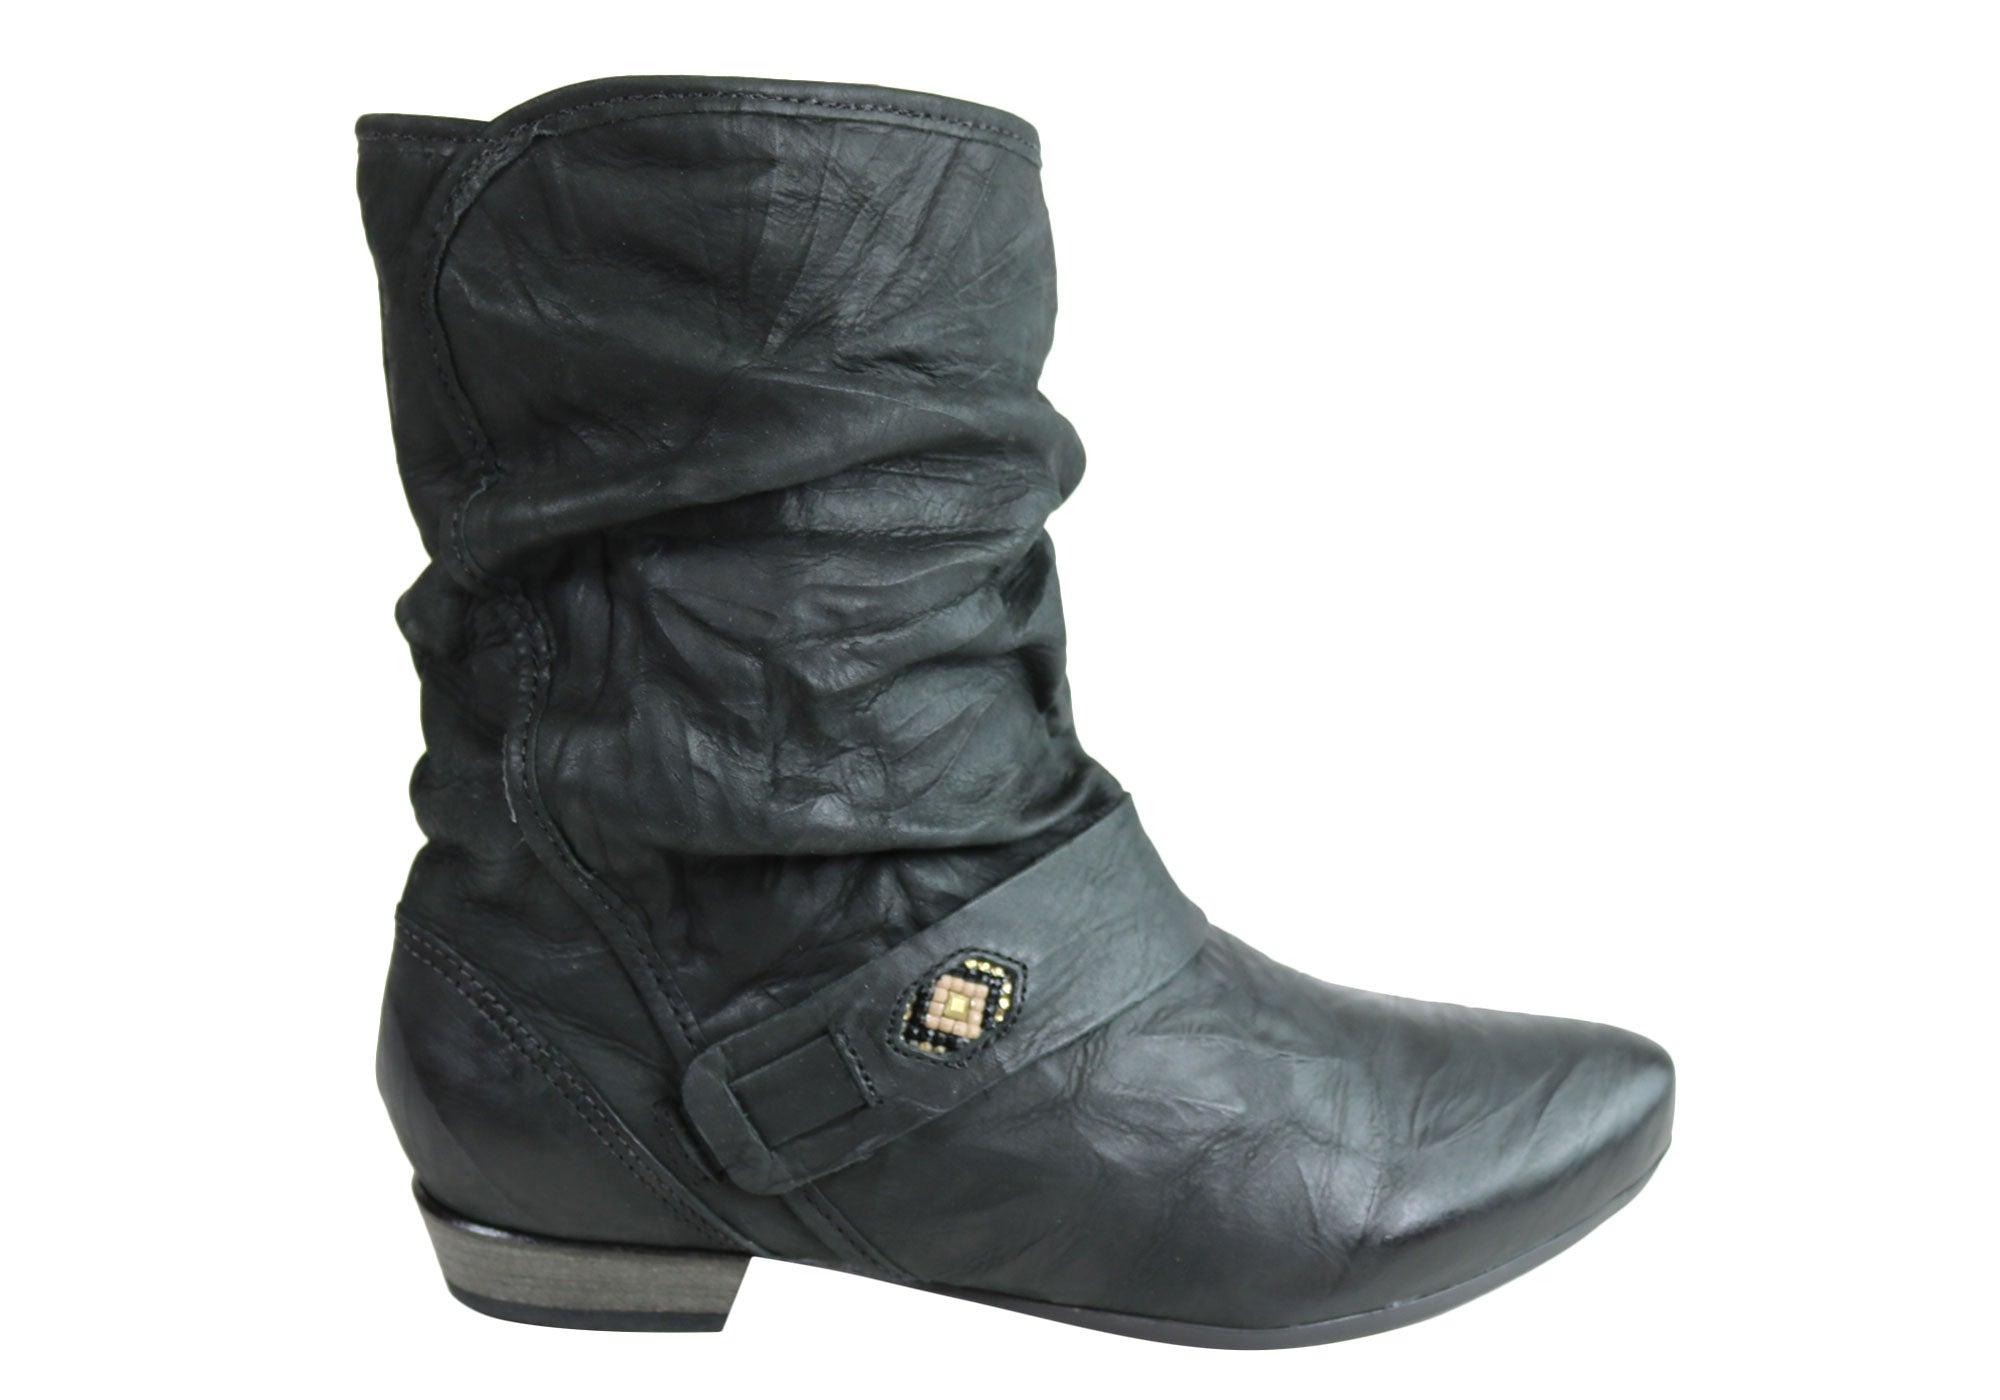 57869d1ed68c3 ... Womens Leather Comfortable Low Heel Boots Made In Brazil. Black ...